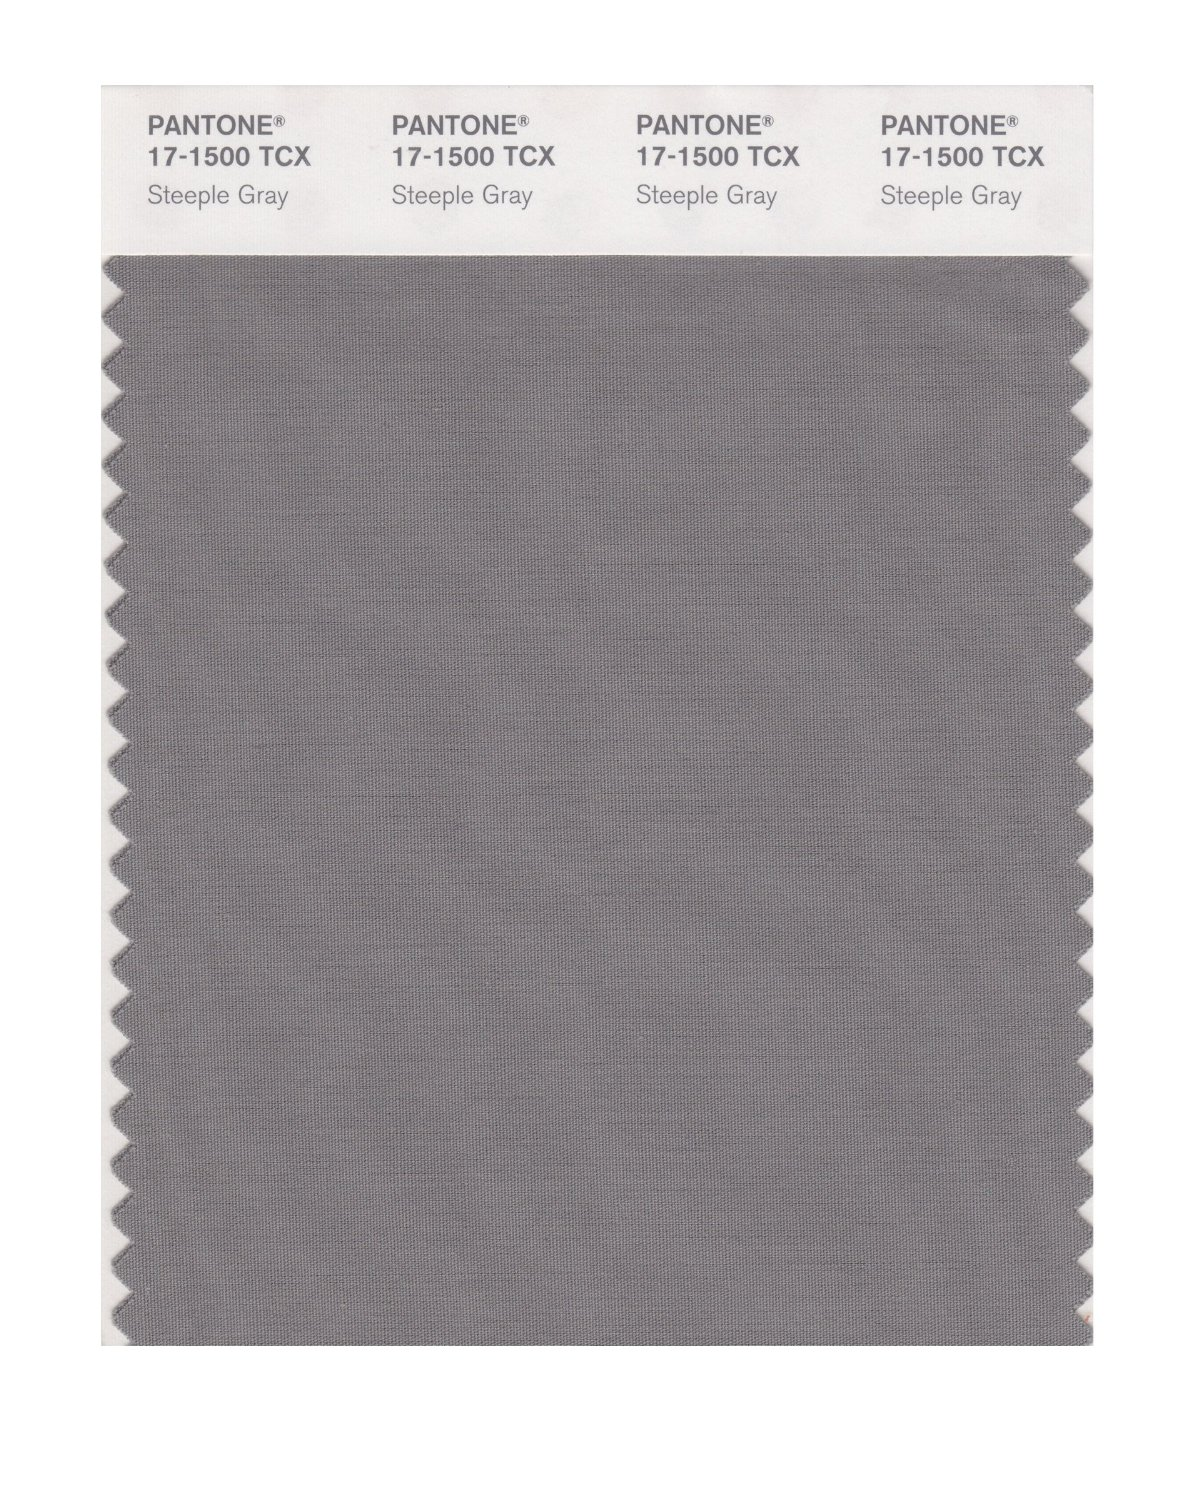 Pantone Smart Swatch 17-1500 Steeple Gray